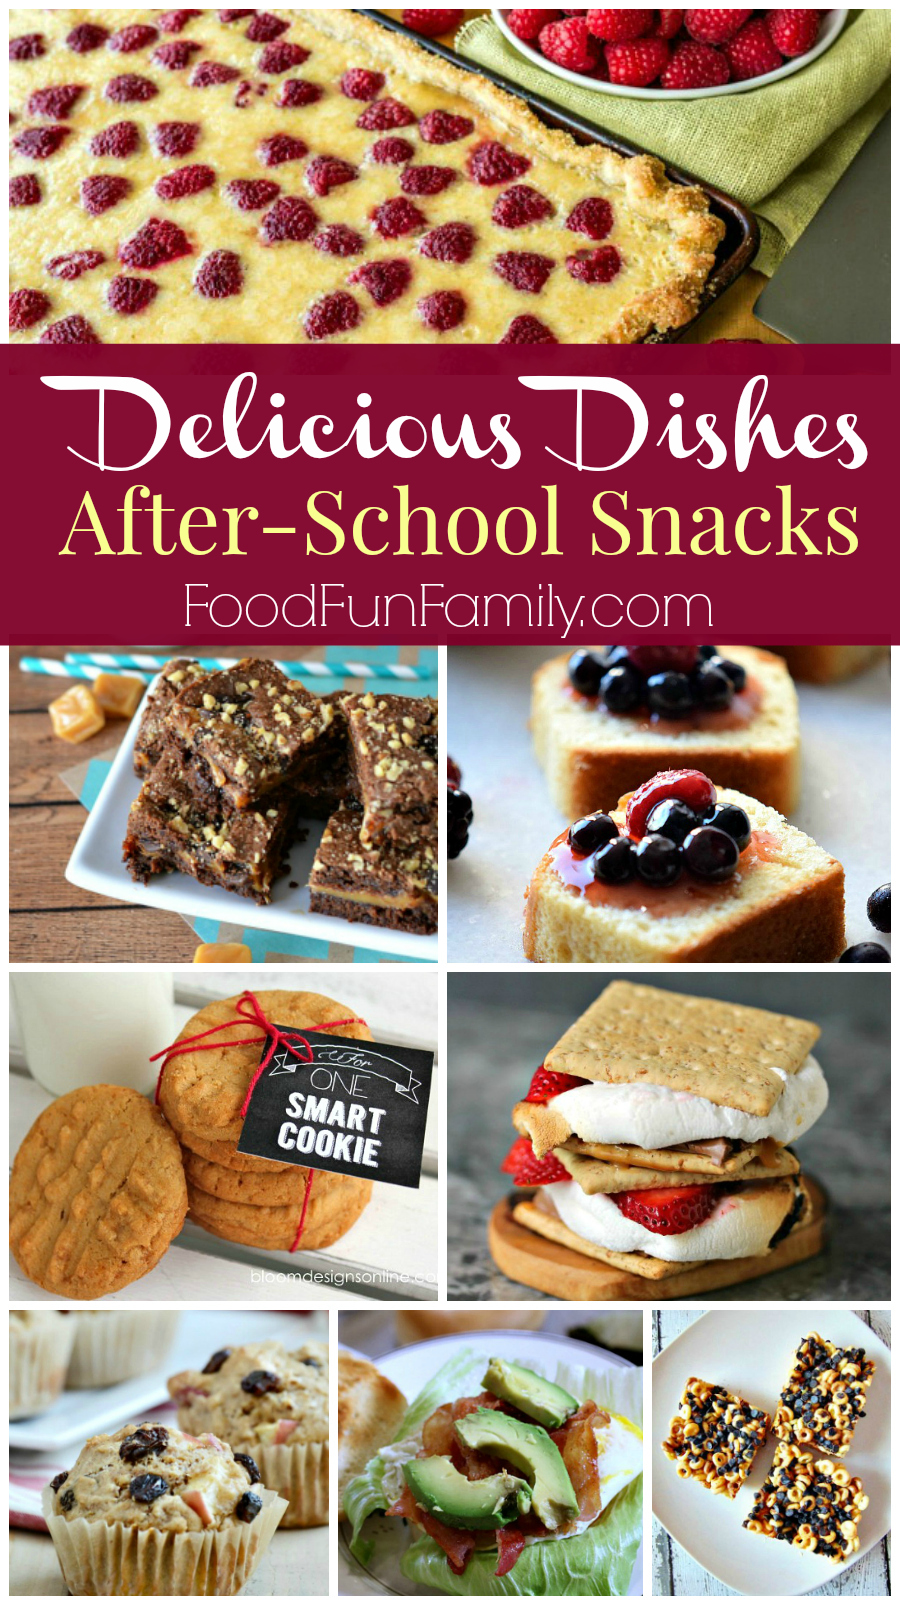 Delicious Dishes Recipe Party #33 - After school snacks